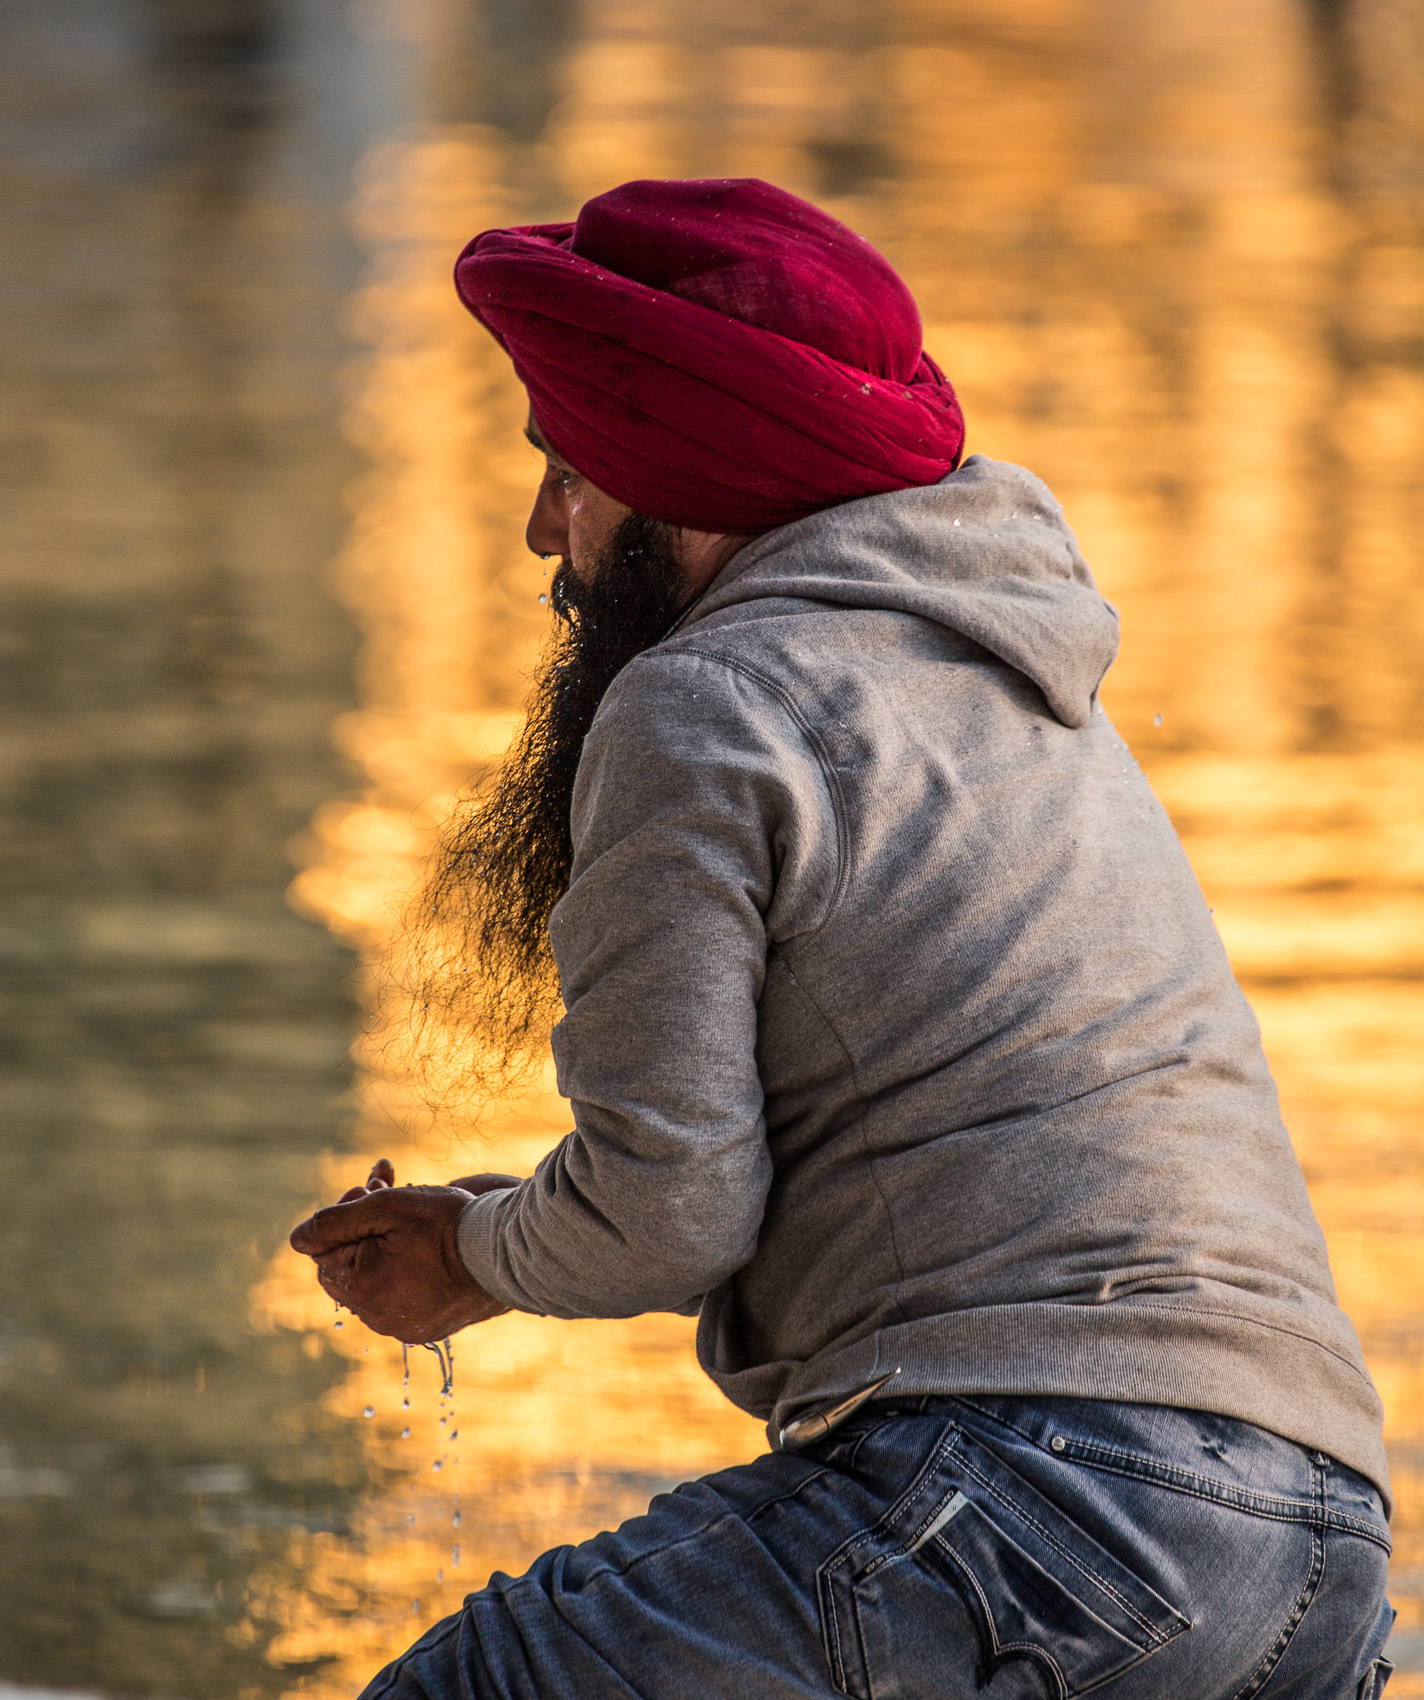 India-Punjab-Amritsar-Golden-Temple-Red-Turban-Reflection